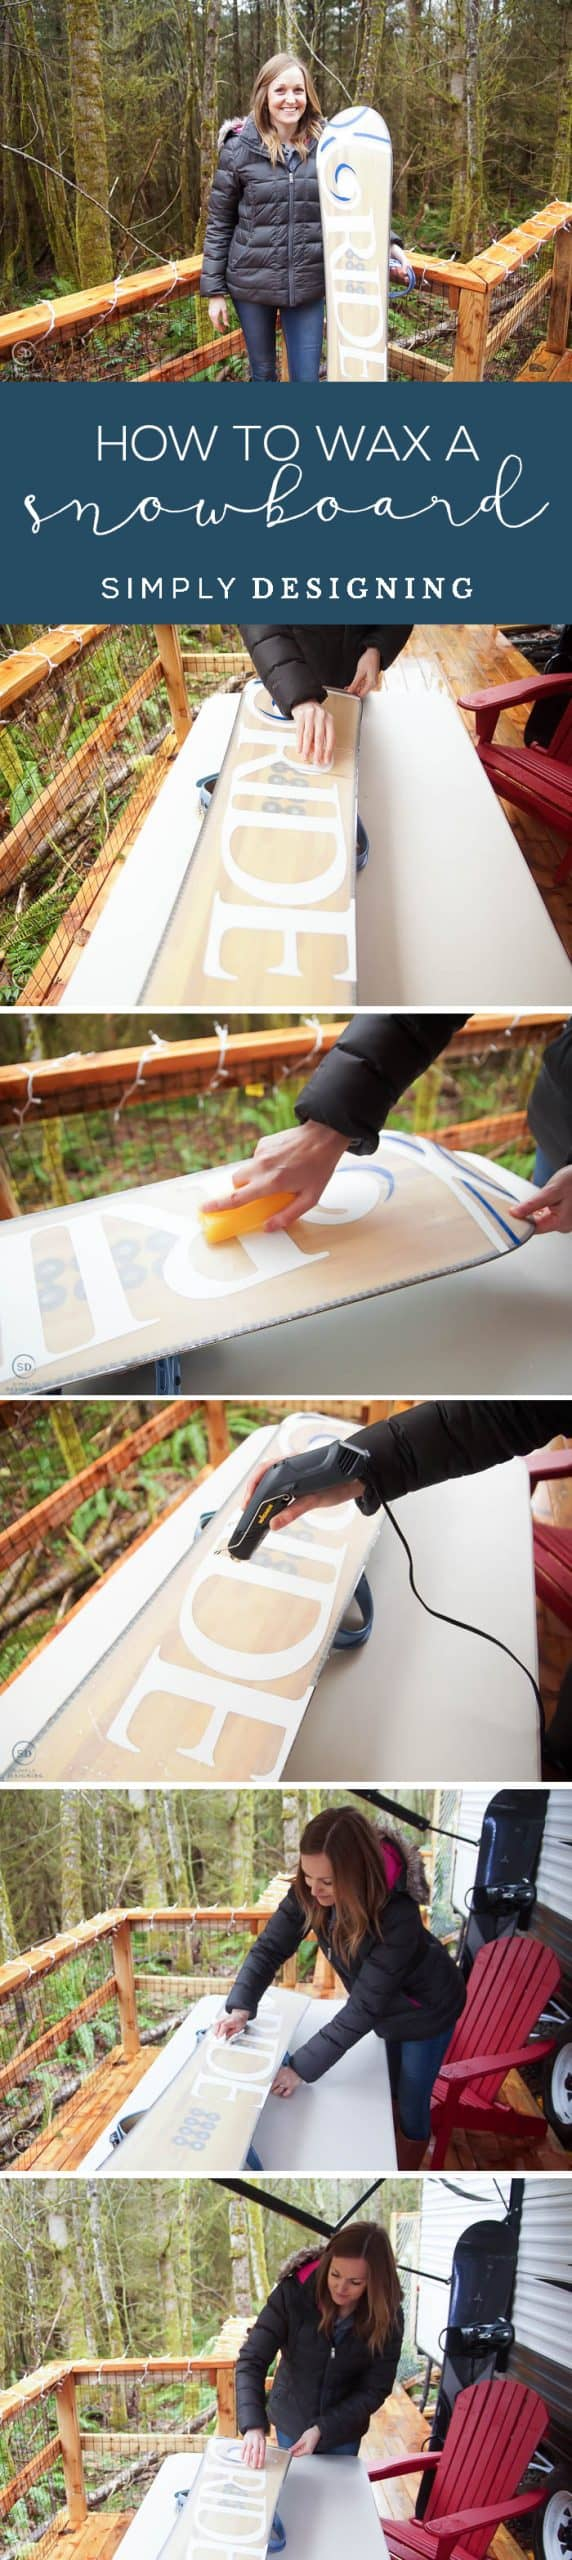 I am showing you How to Wax a Snowboard quickly so that your board will always be in good shape and you will be ready to fly down the slopes anytime